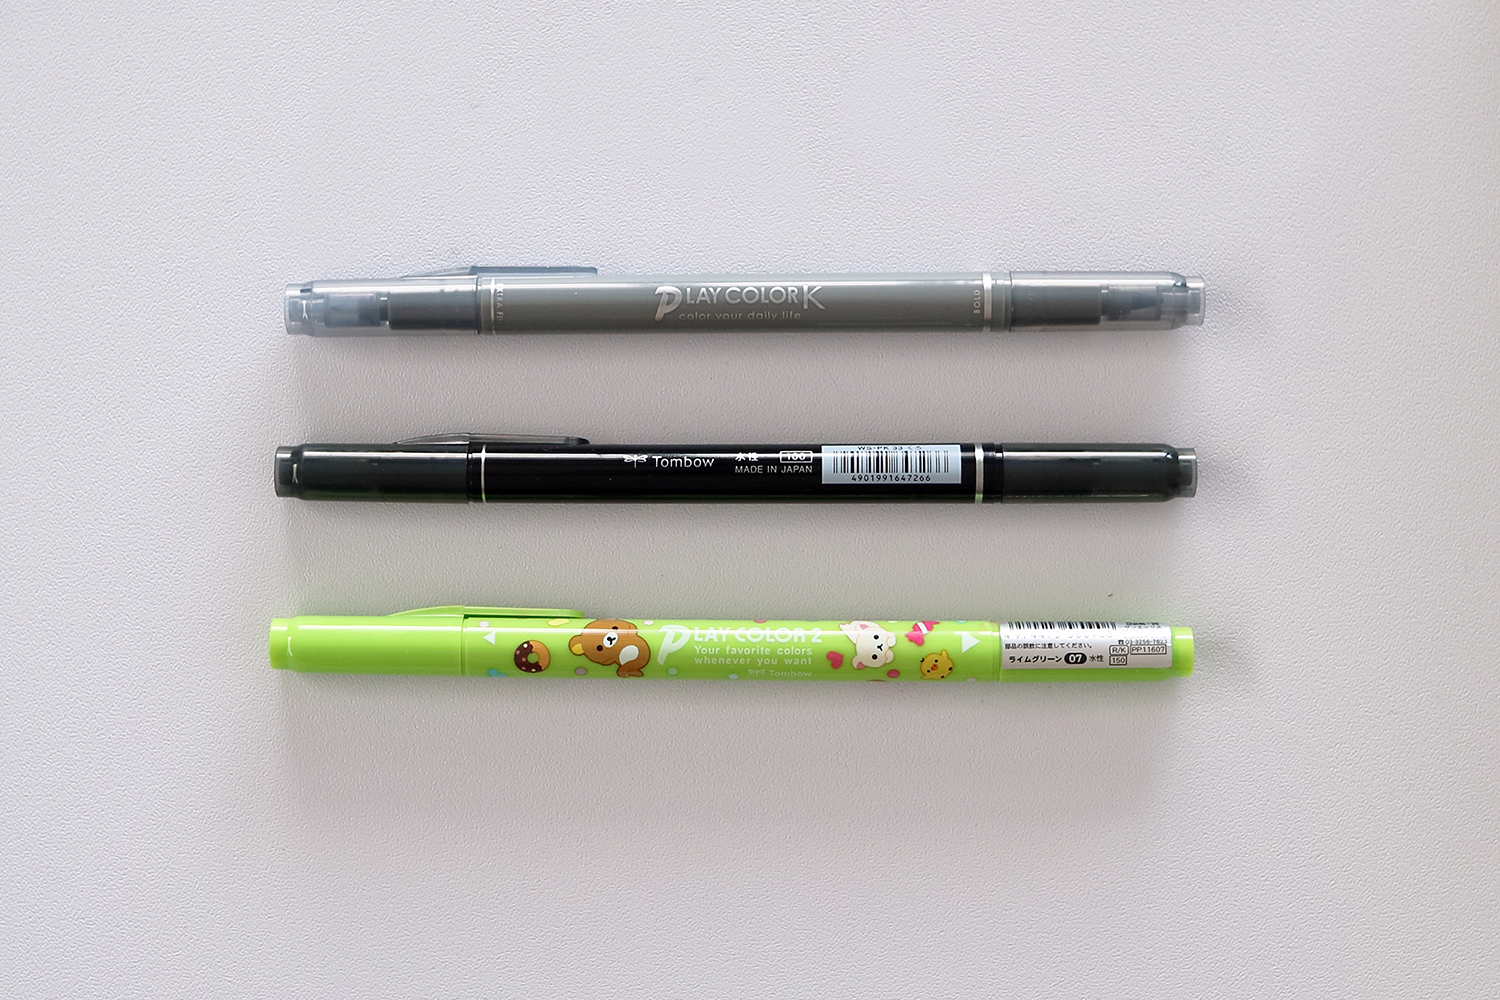 Tombow Playcolor